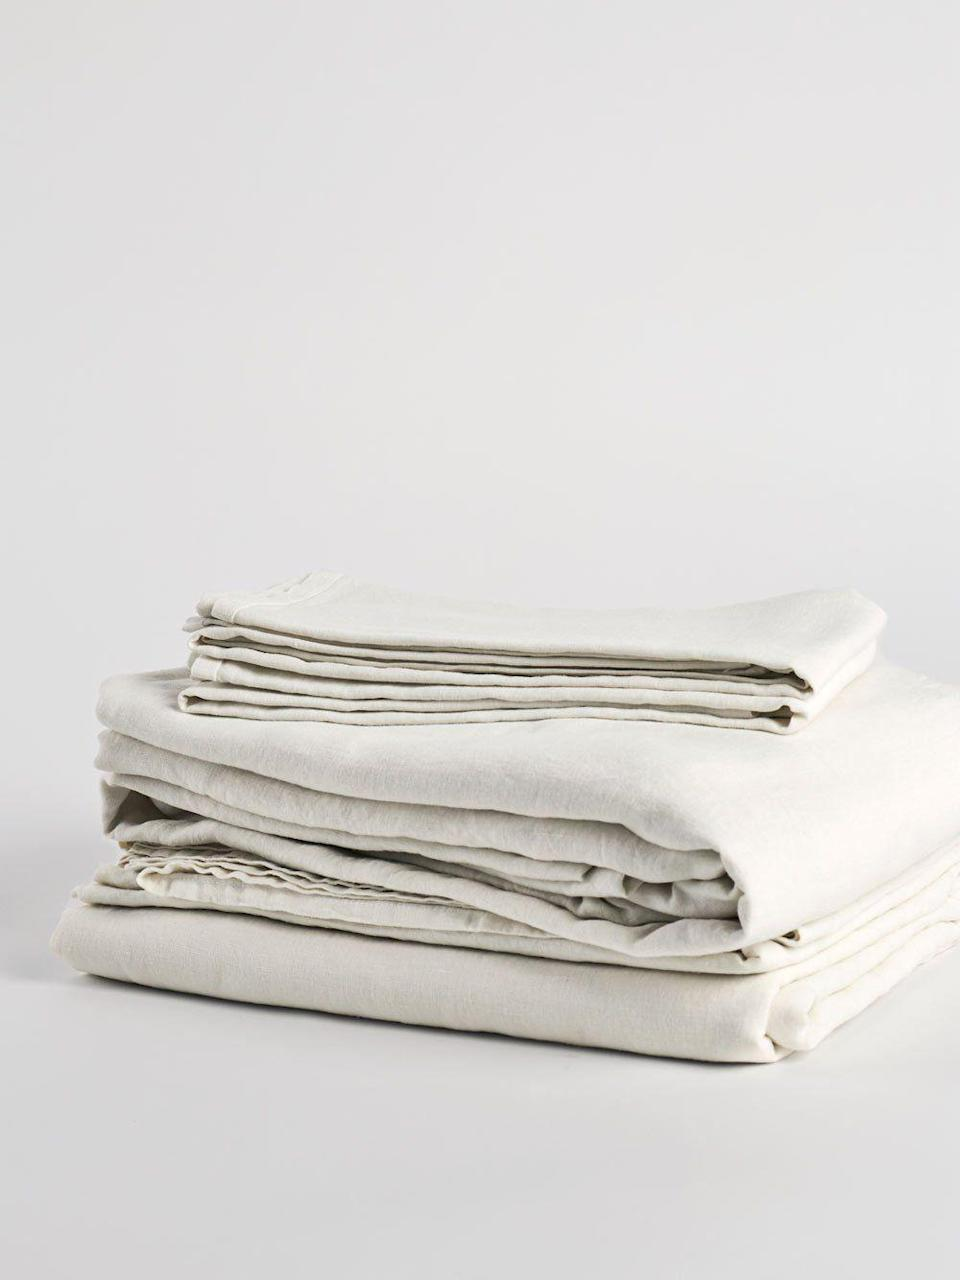 """<p><strong>Matteo</strong></p><p>matteola.com</p><p><strong>$555.00</strong></p><p><a href=""""https://matteola.com/products/vintage-linen-sheet-set"""" rel=""""nofollow noopener"""" target=""""_blank"""" data-ylk=""""slk:BUY NOW"""" class=""""link rapid-noclick-resp"""">BUY NOW</a></p><p>Matteo Home is the go-to for luxury linen sheets, and if you're able to pay the price, then you won't be sorry. Based in Los Angeles, everything is manufactured there by a small team of about fifty craftspeople. All fabrics are garment-washed and dyed with non-toxic chemicals. You'll save about 10 percent if you opt for the sheet set (includes a top sheet, fitted sheet, and either one or two pillowcases depending on the size you order), but you could also mix and match their various neutral tones for a subtle, layered look. </p>"""